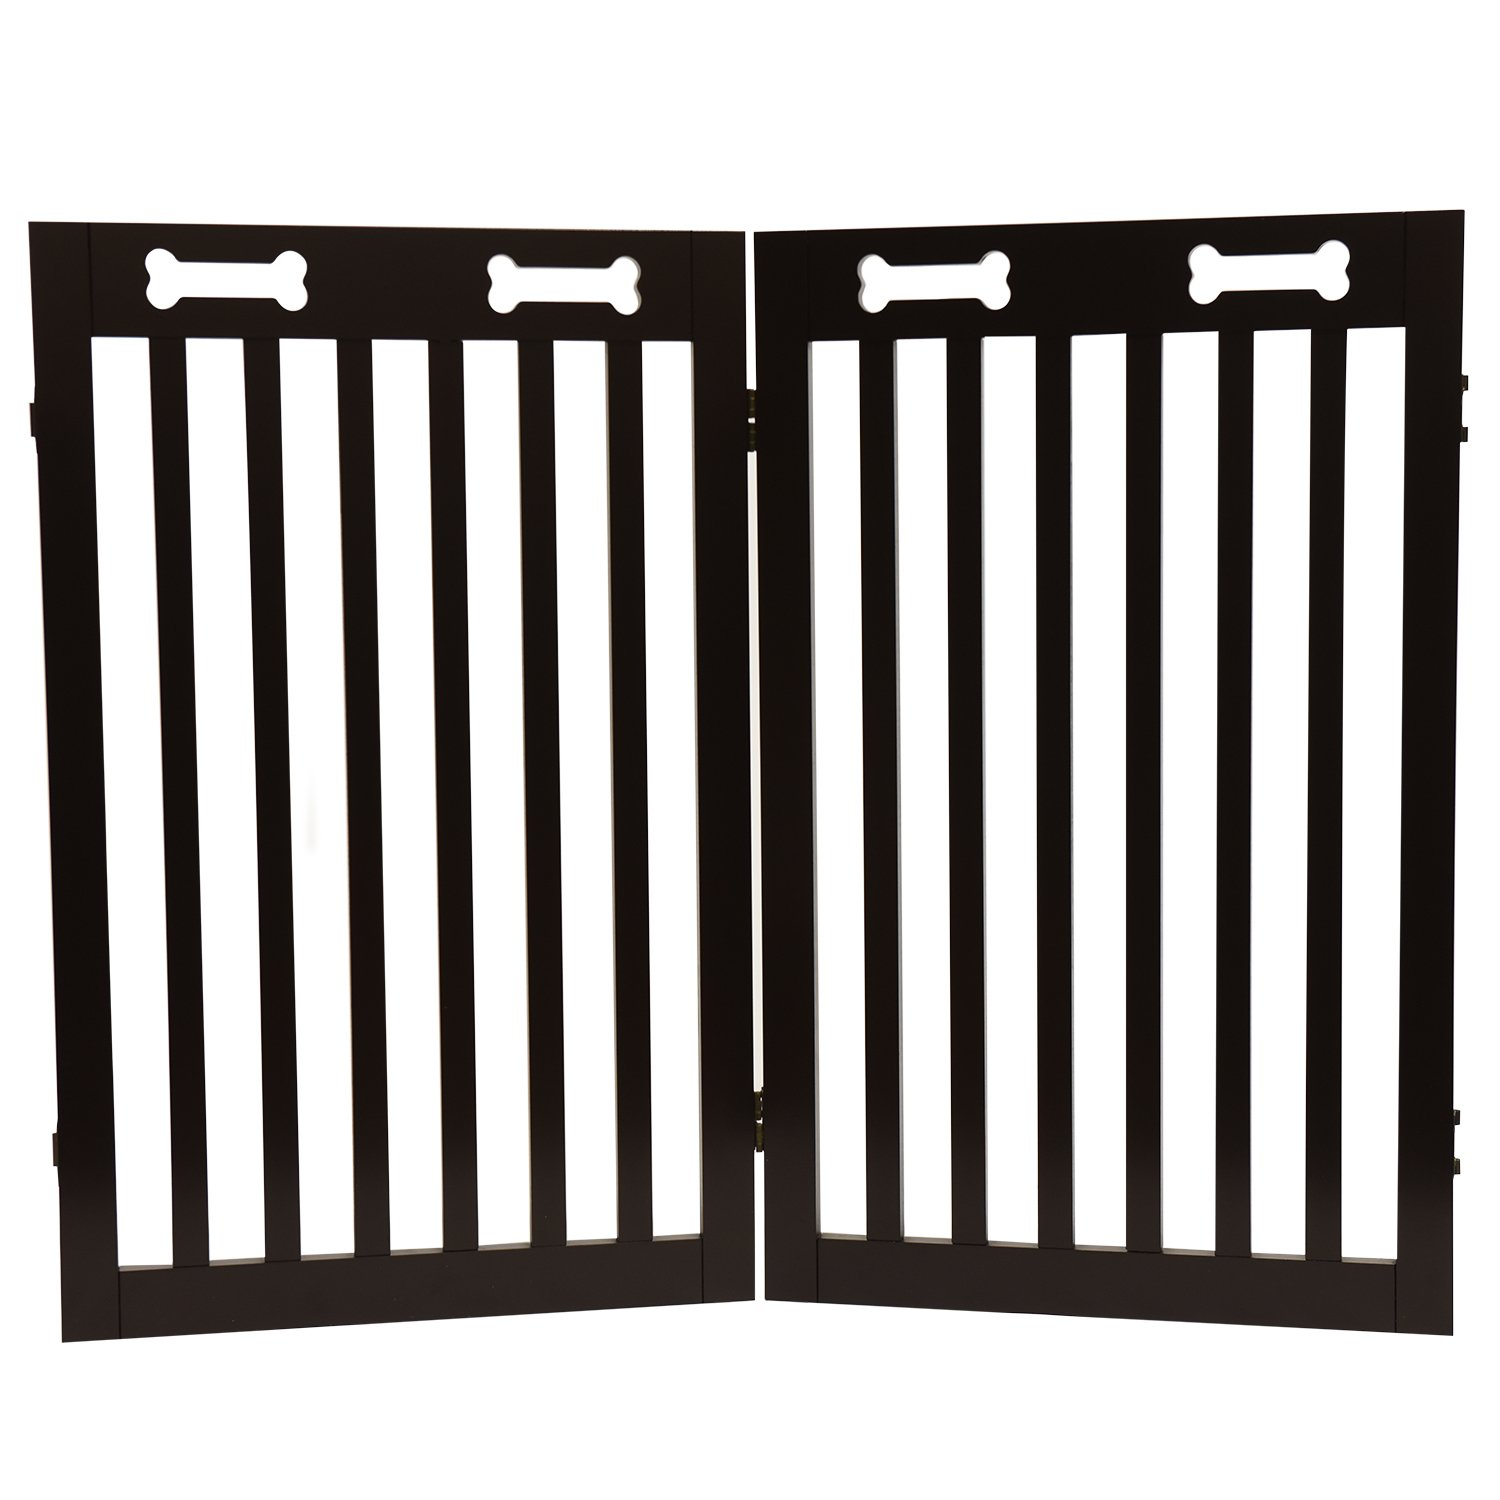 Arf Pets Extension gate Kit, Set of 2 panels - Extension for the Free Standing Wood Dog Gate